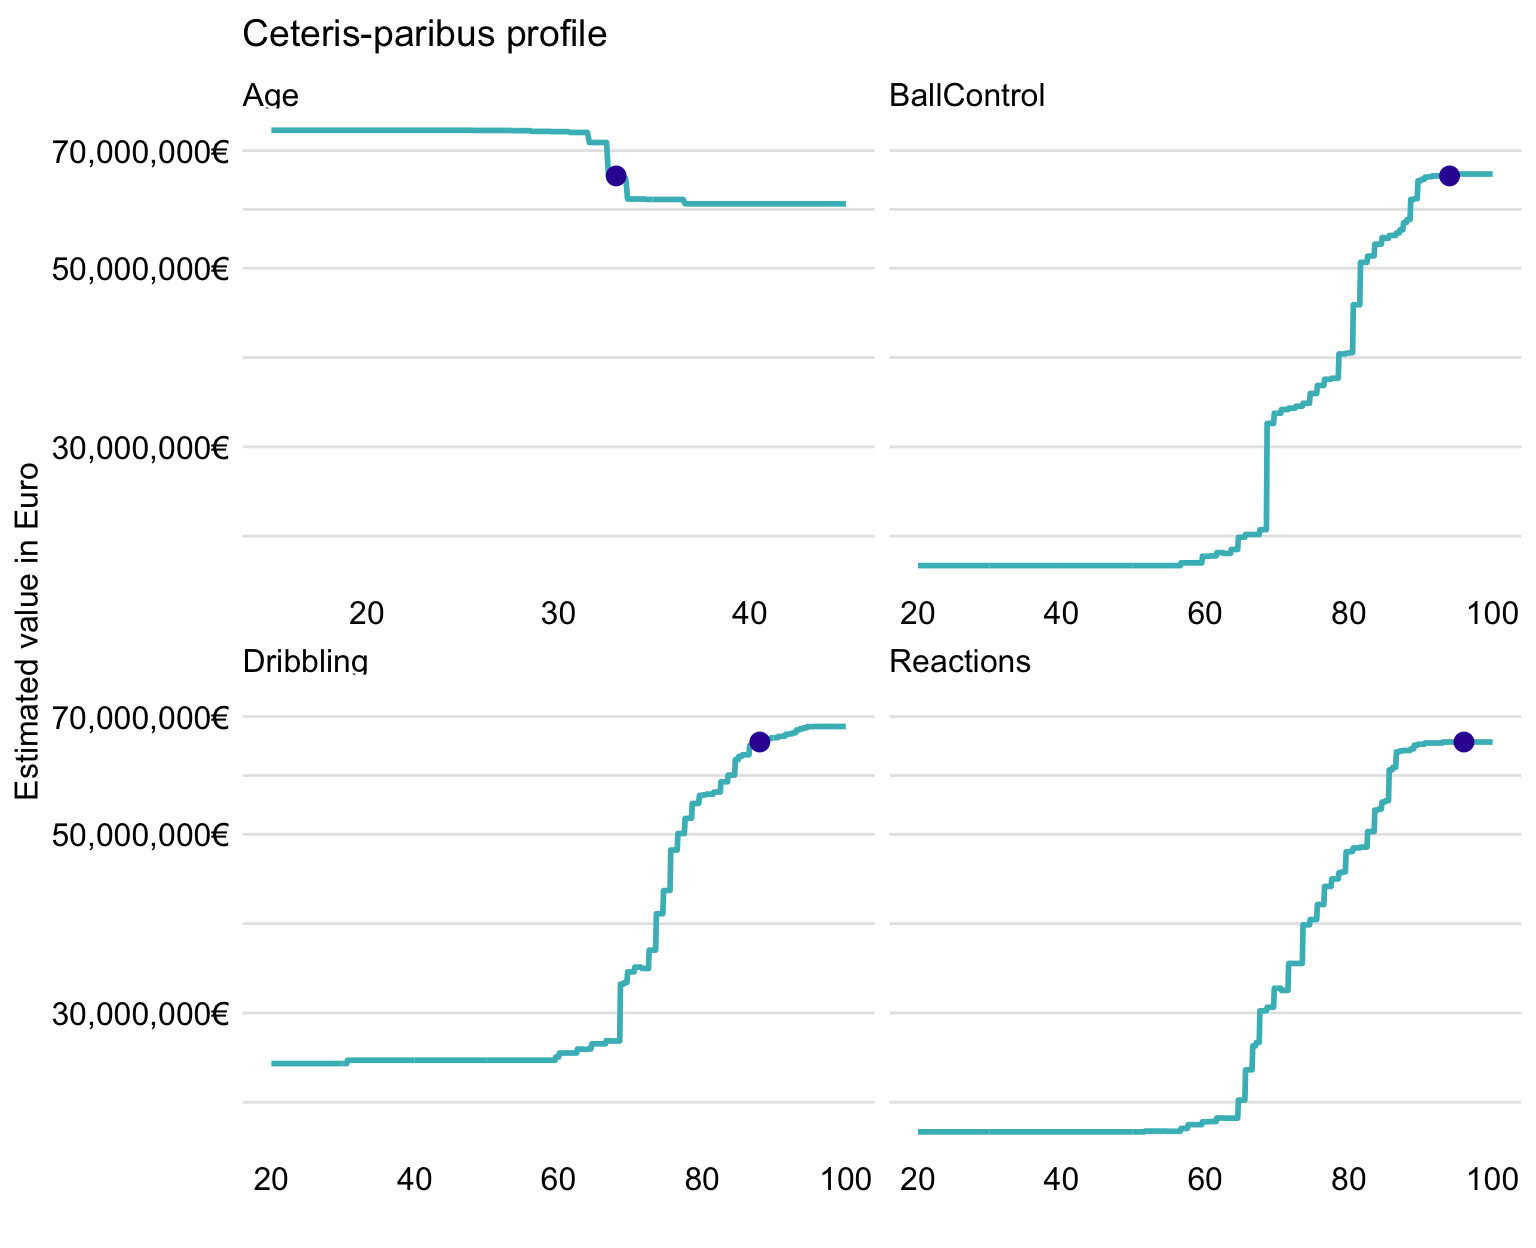 Ceteris-paribus profiles for Cristiano Ronaldo for four selected variables and the random forest model.